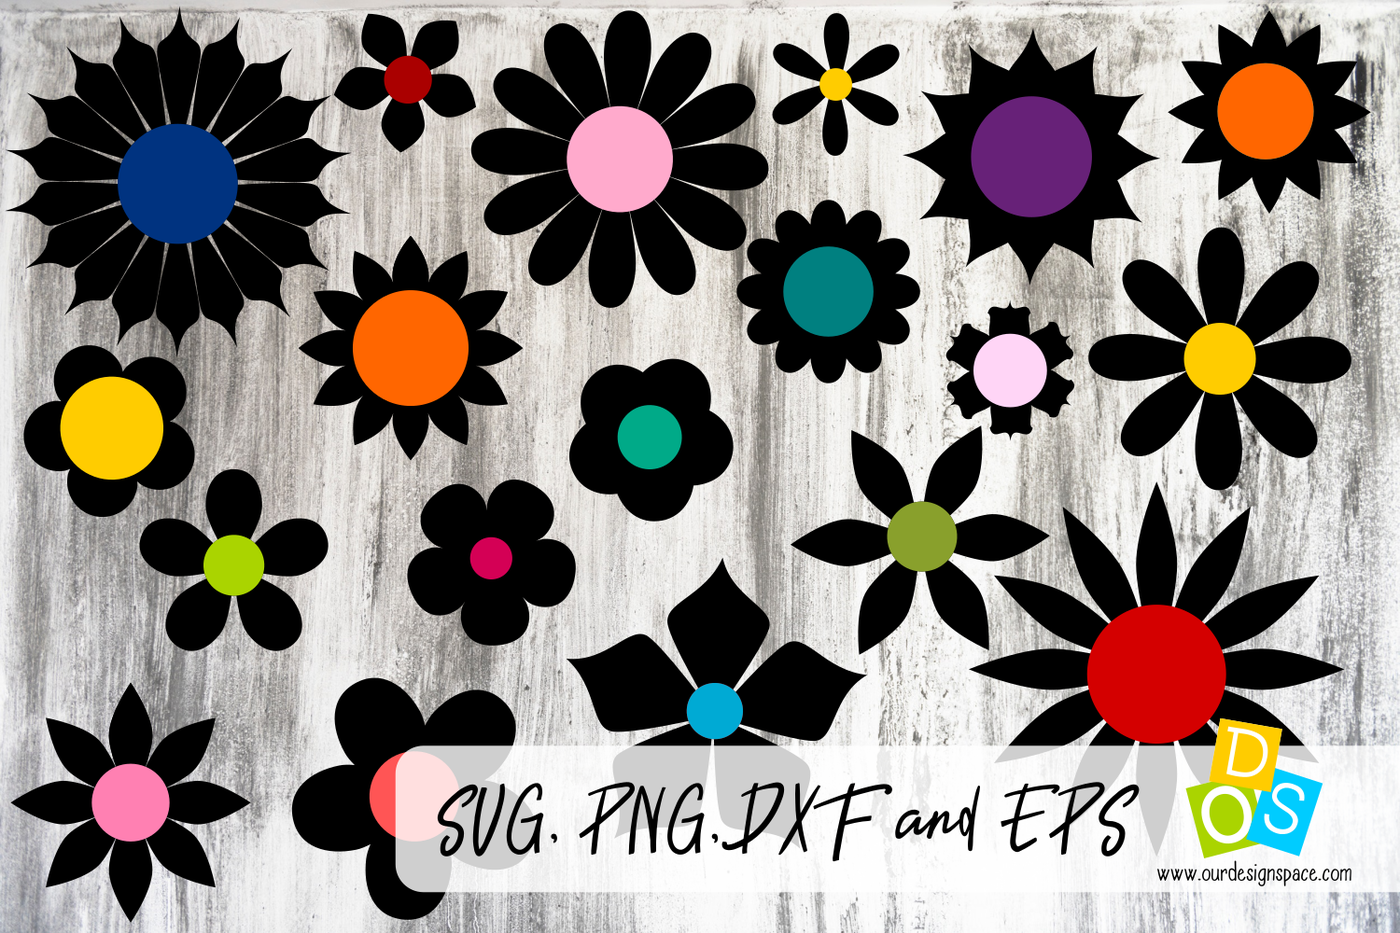 Simple Flowers Svg Png Dxf And Eps File By Our Design Space